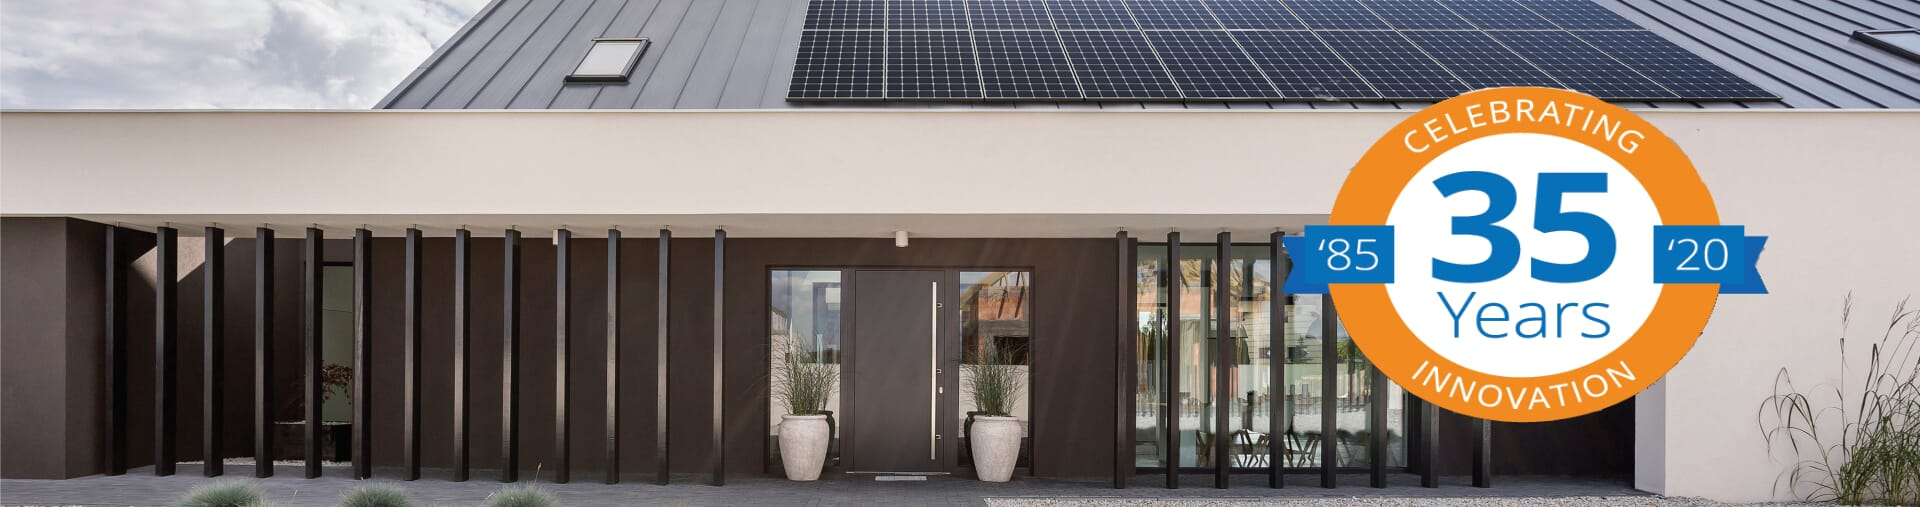 SunPower Anniversary Sales Event | Fresno and Bakersfield ...